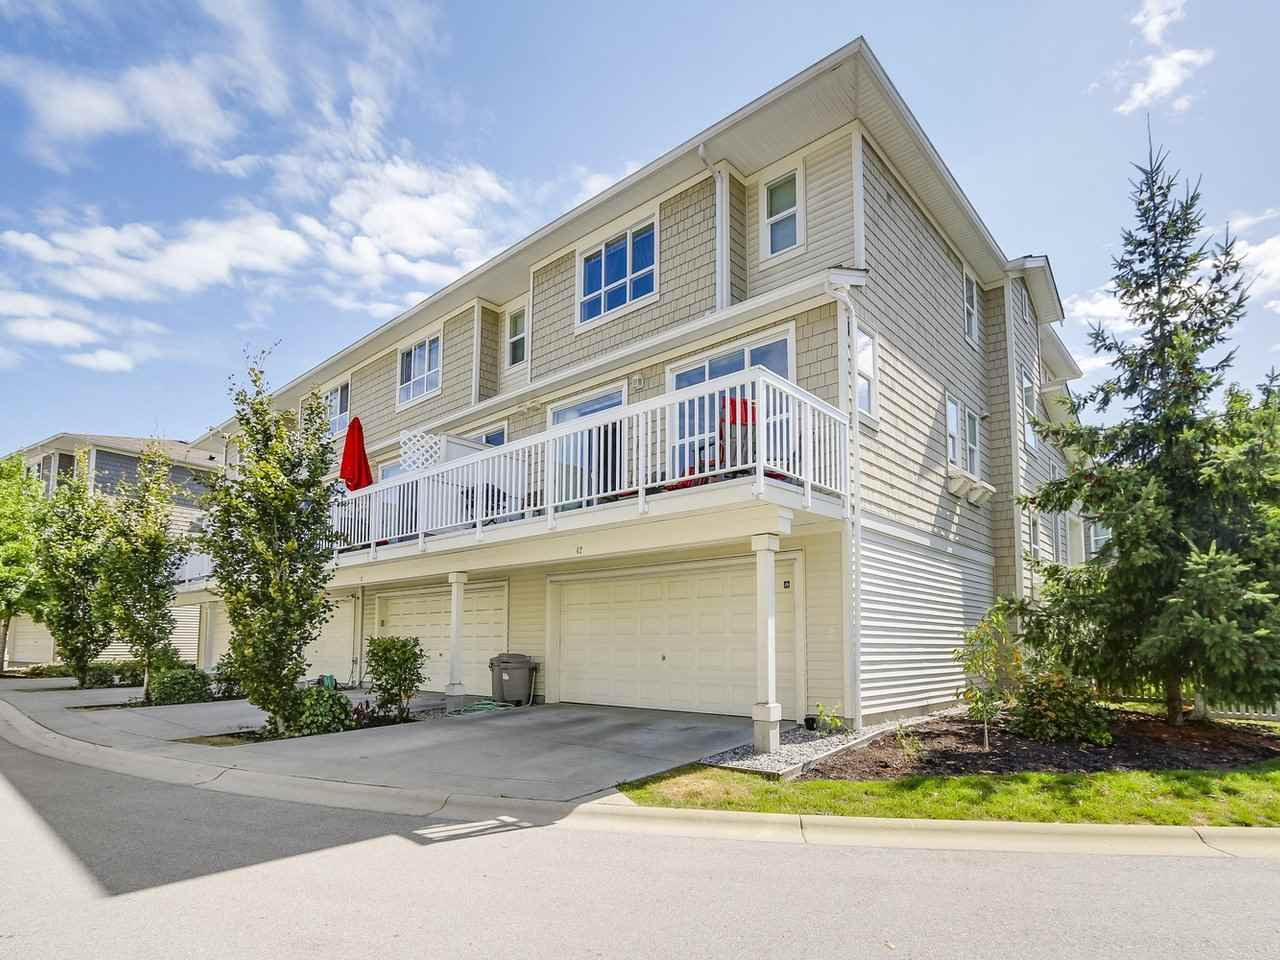 Townhouse at 42 8355 DELSOM WAY, Unit 42, N. Delta, British Columbia. Image 2